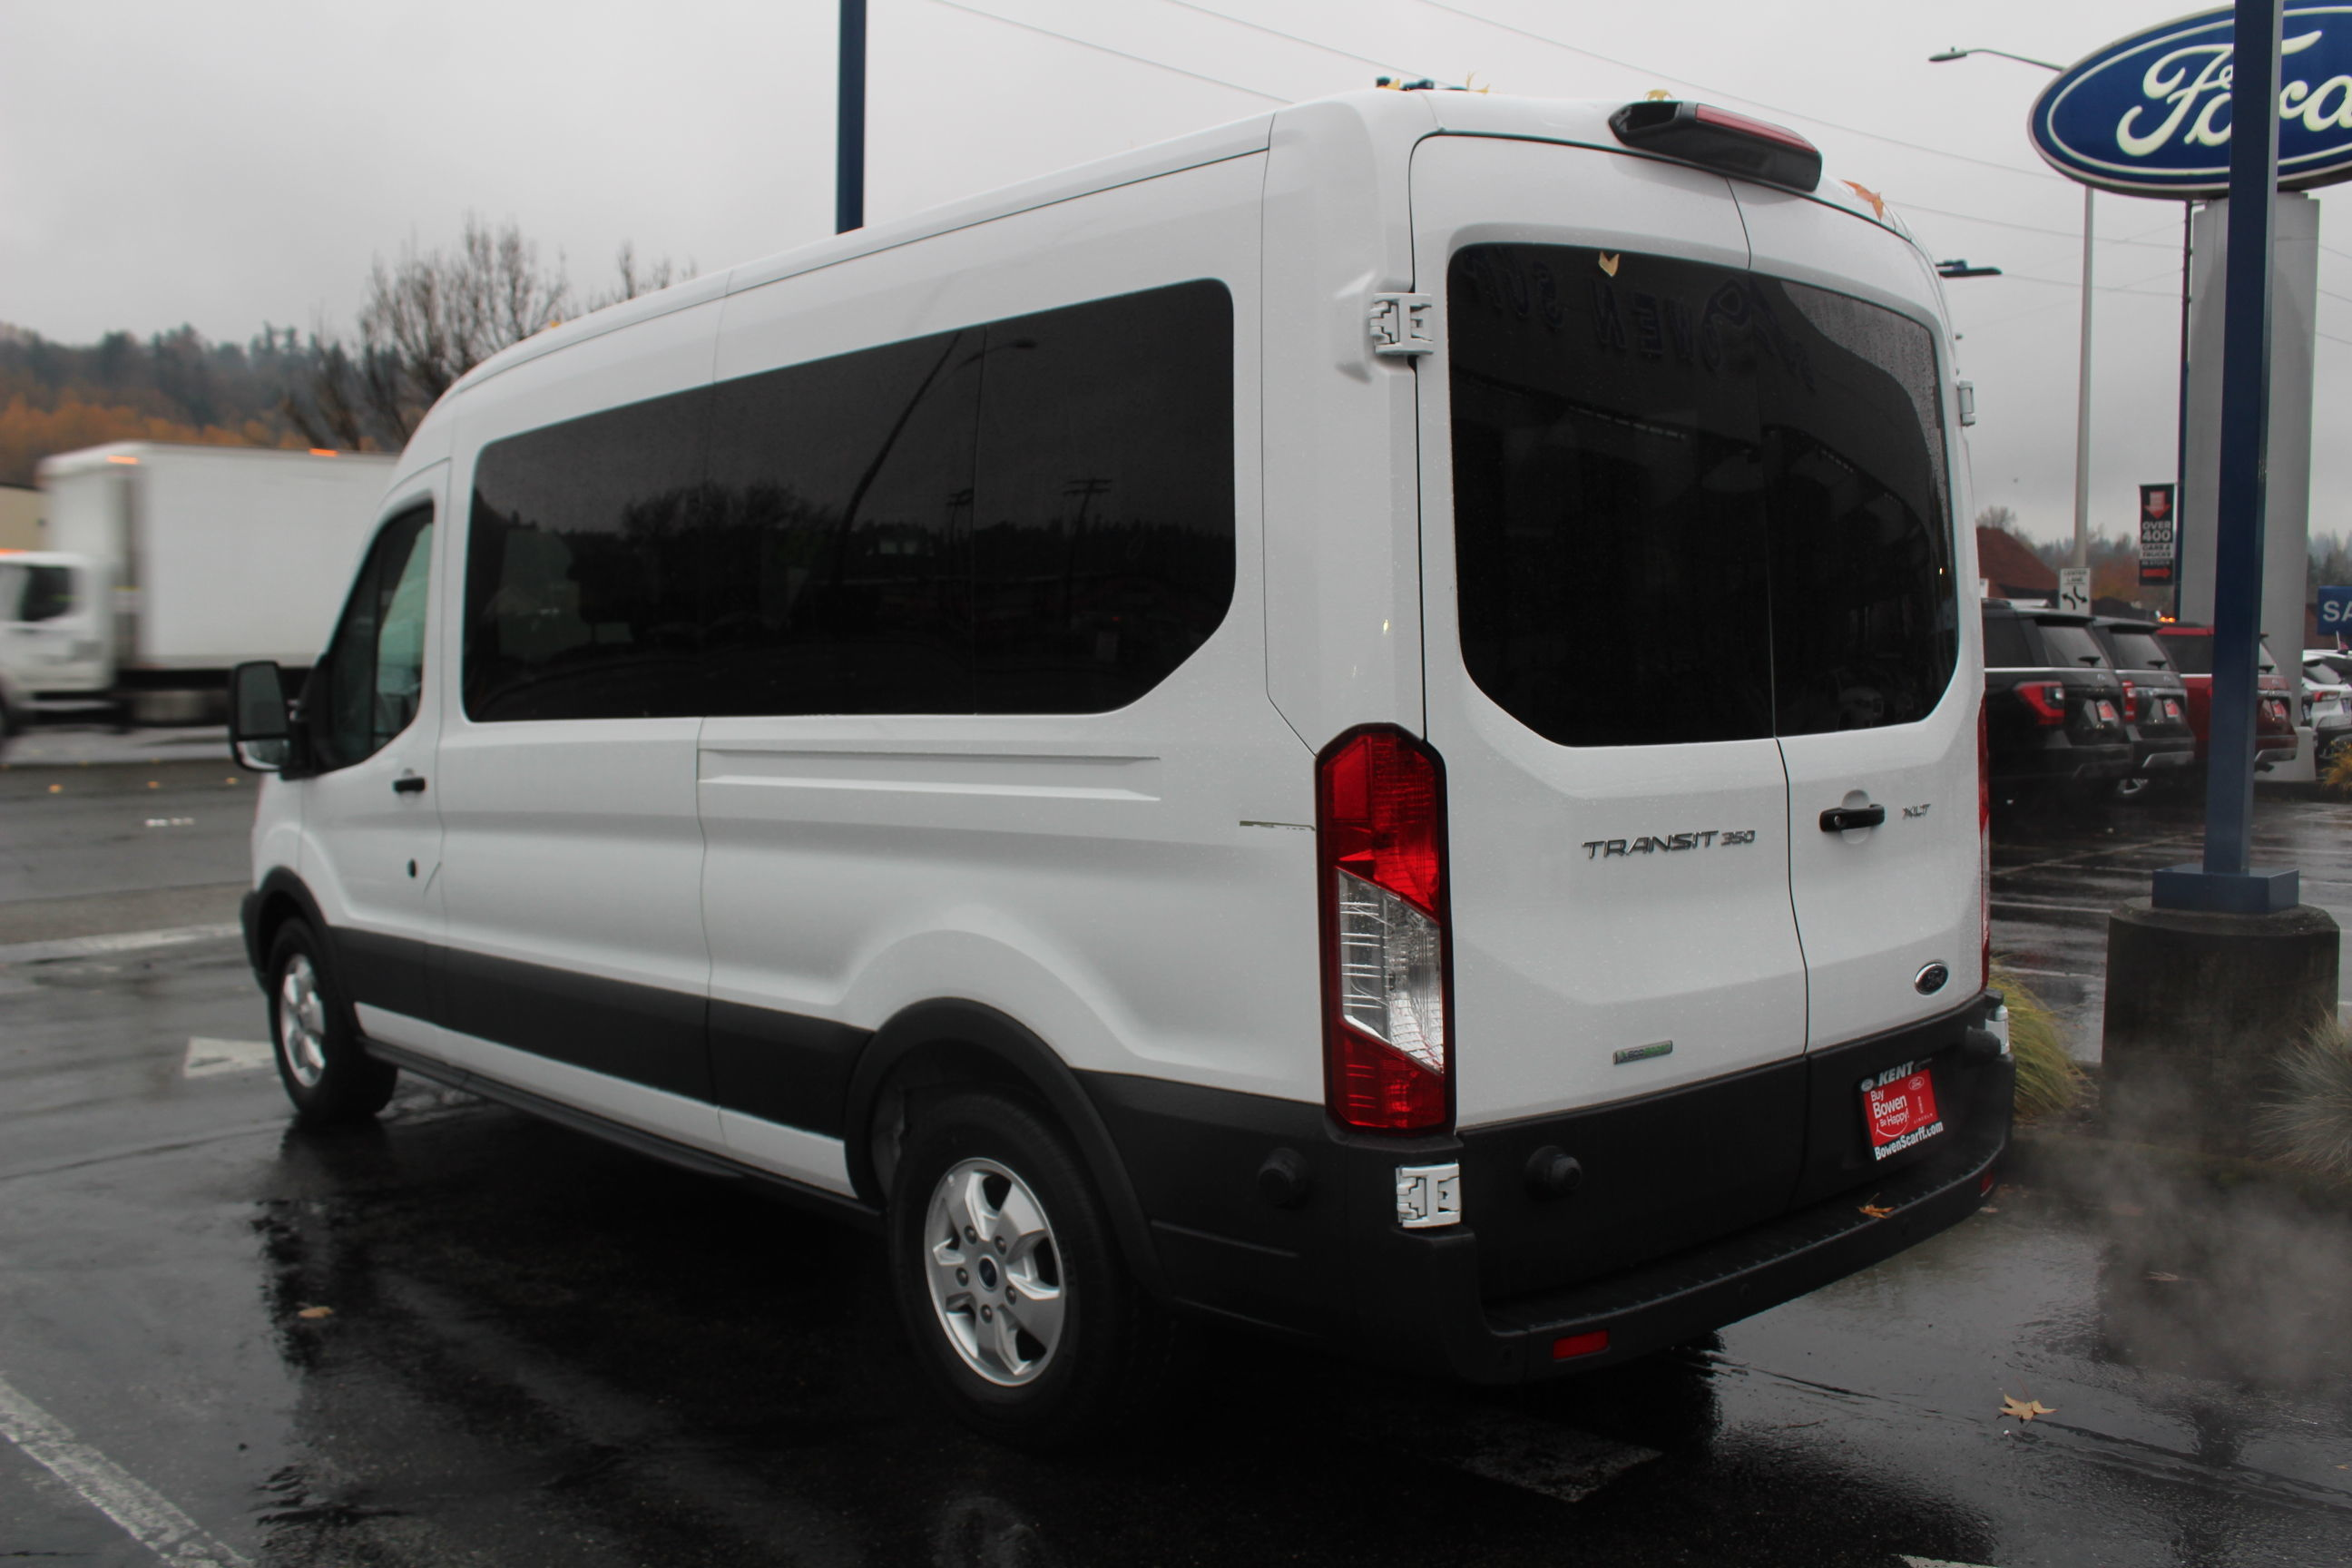 2018 Transit 350 Med Roof 4x2, Passenger Wagon #52568 - photo 1